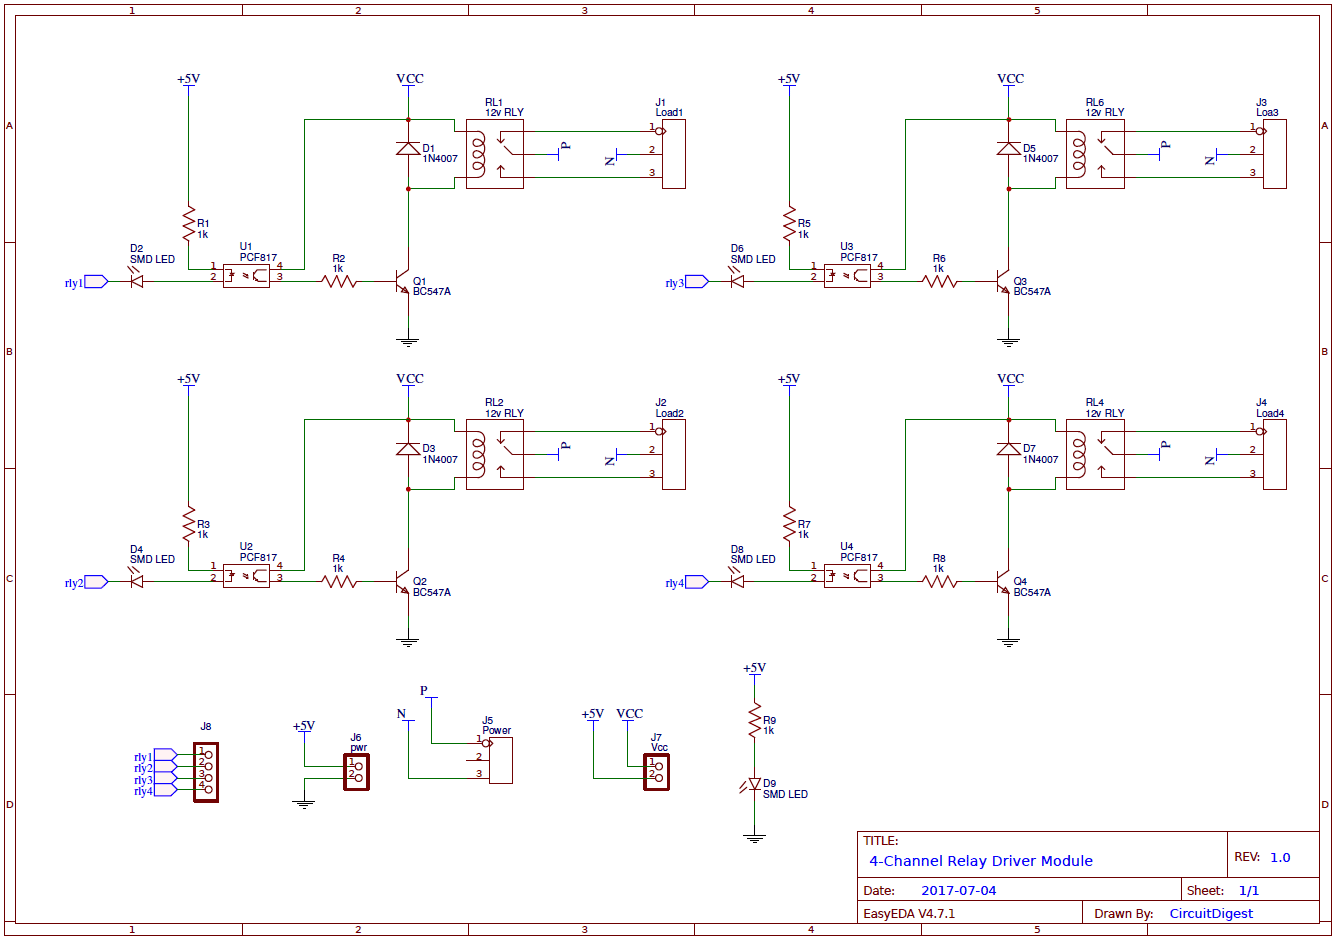 Relay Modules Diagram - 4.8.derma-lift.de • on arduino relay example, arduino 110v relay, arduino transistor relay, arduino solid state relay, arduino relay tutorial, arduino 12v relay, arduino 120v relay, arduino relay diagram, arduino 24v relay,